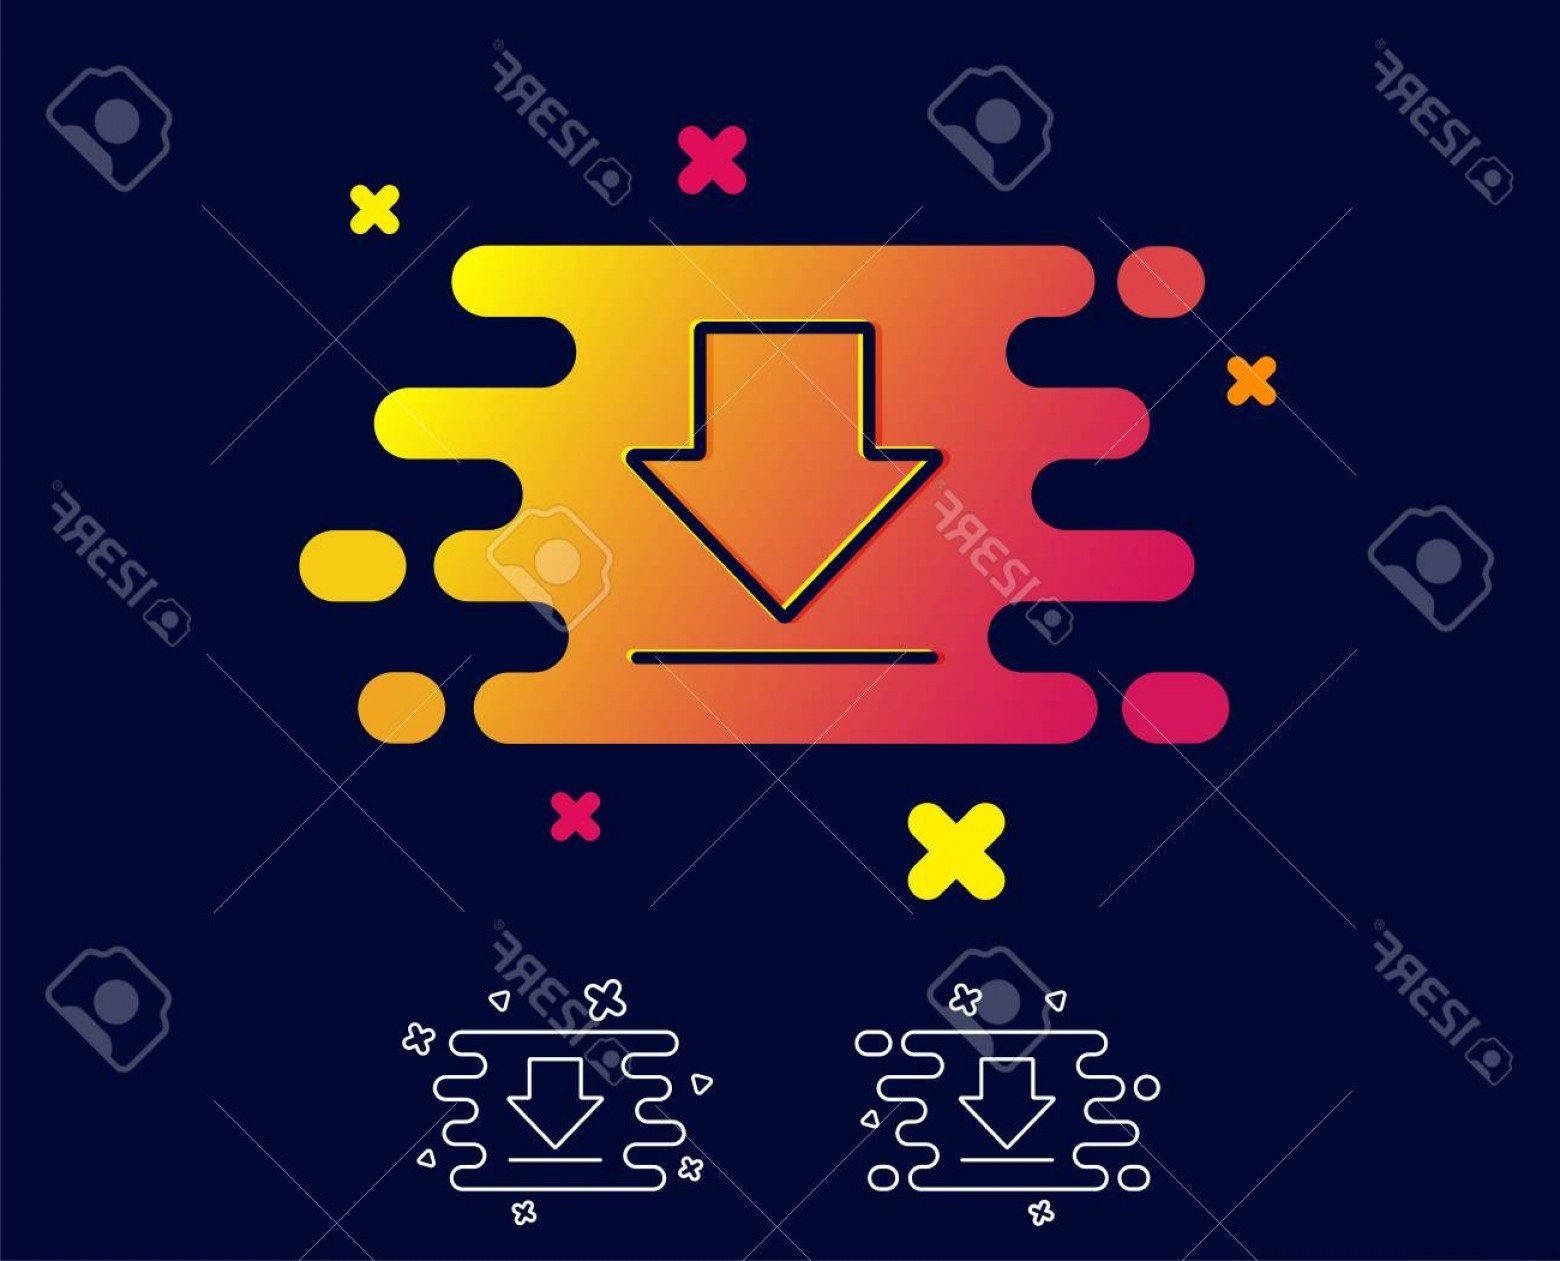 Downloadable Vector Cross: Photostock Vector Download Line Icon Internet Downloading Sign Load File Symbol Gradient Banner With Line Icon Abstrac